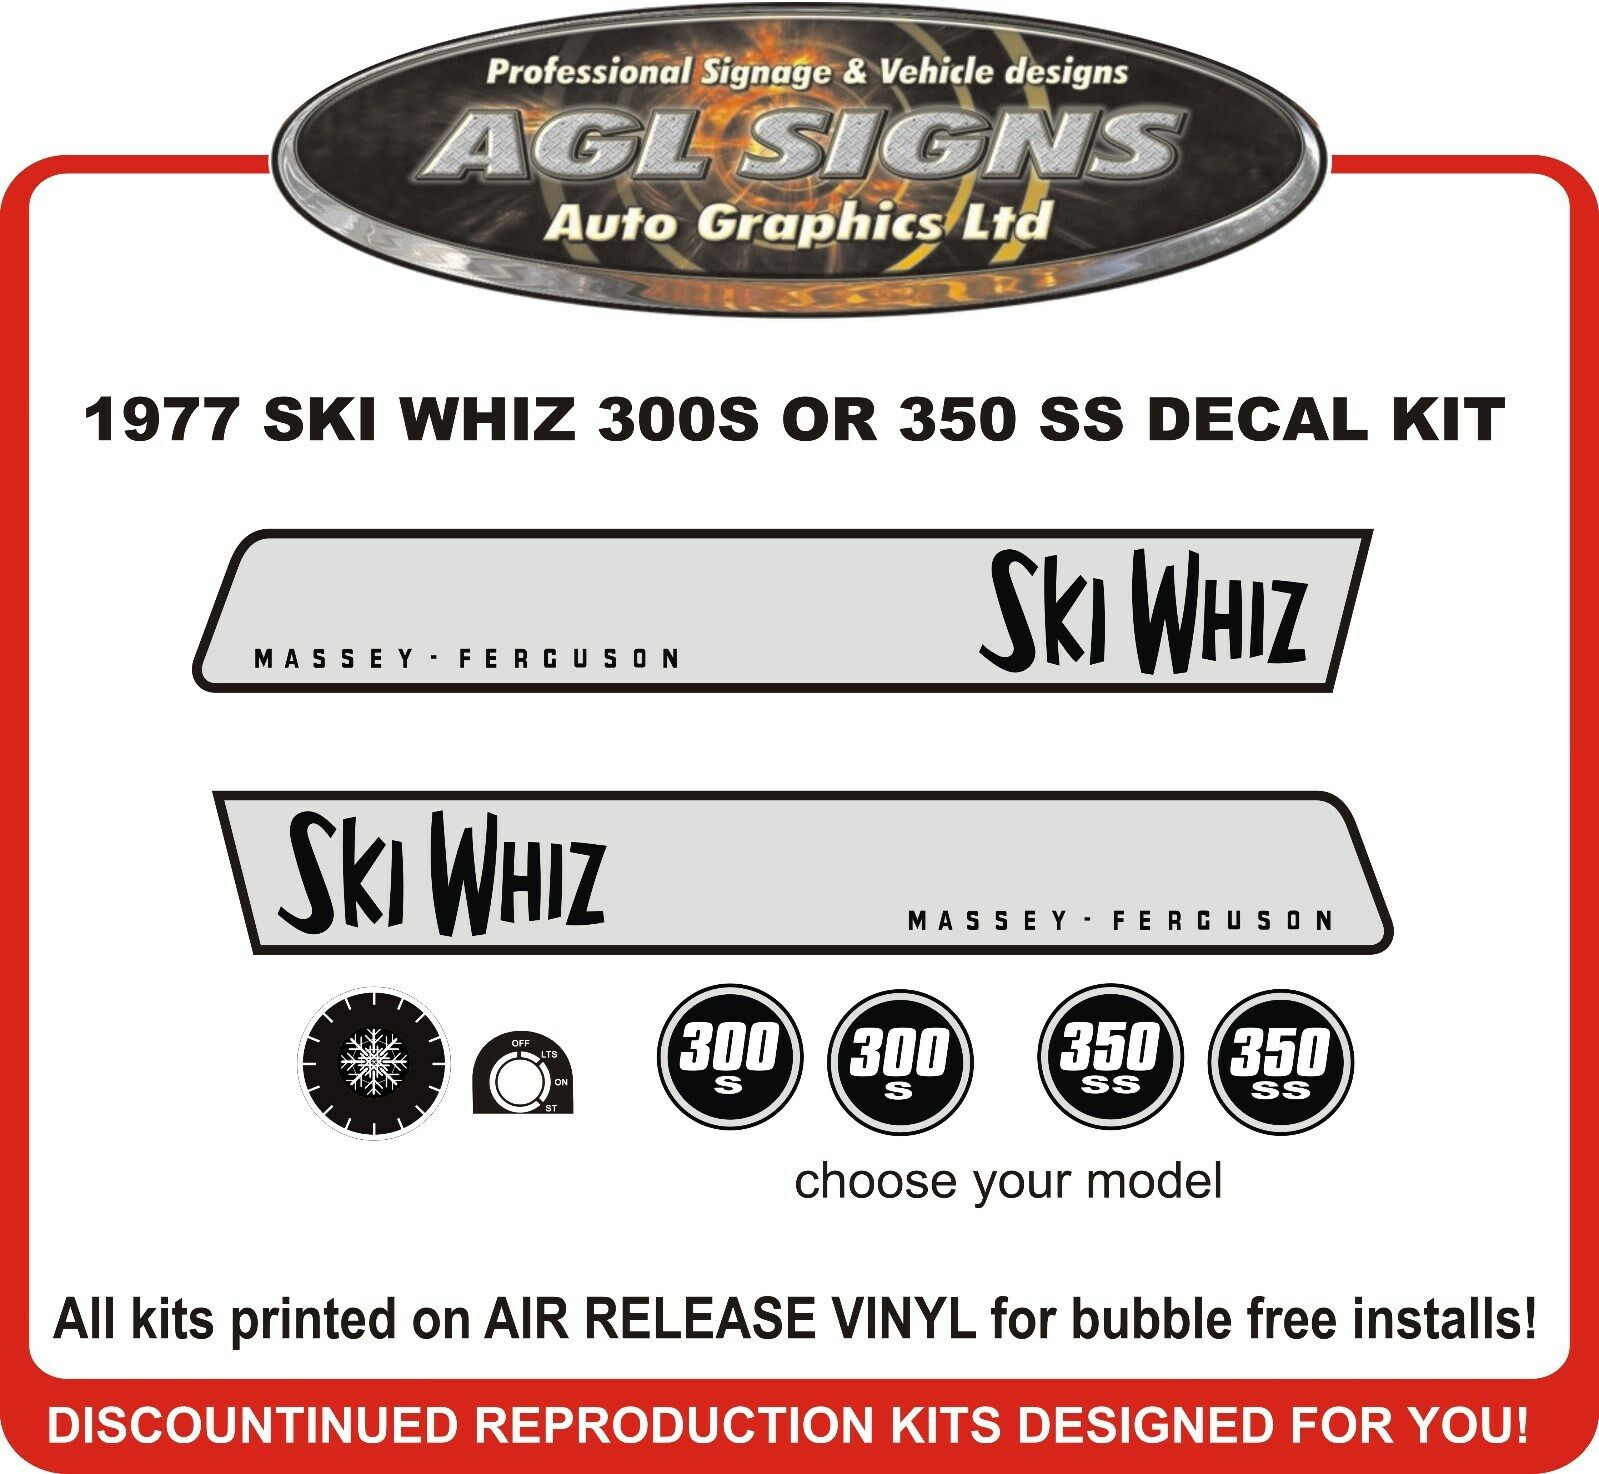 1971 MASSEY - FERGUSON SKI WHIZ 350 SS DECAL SET  reproduction 300 S also